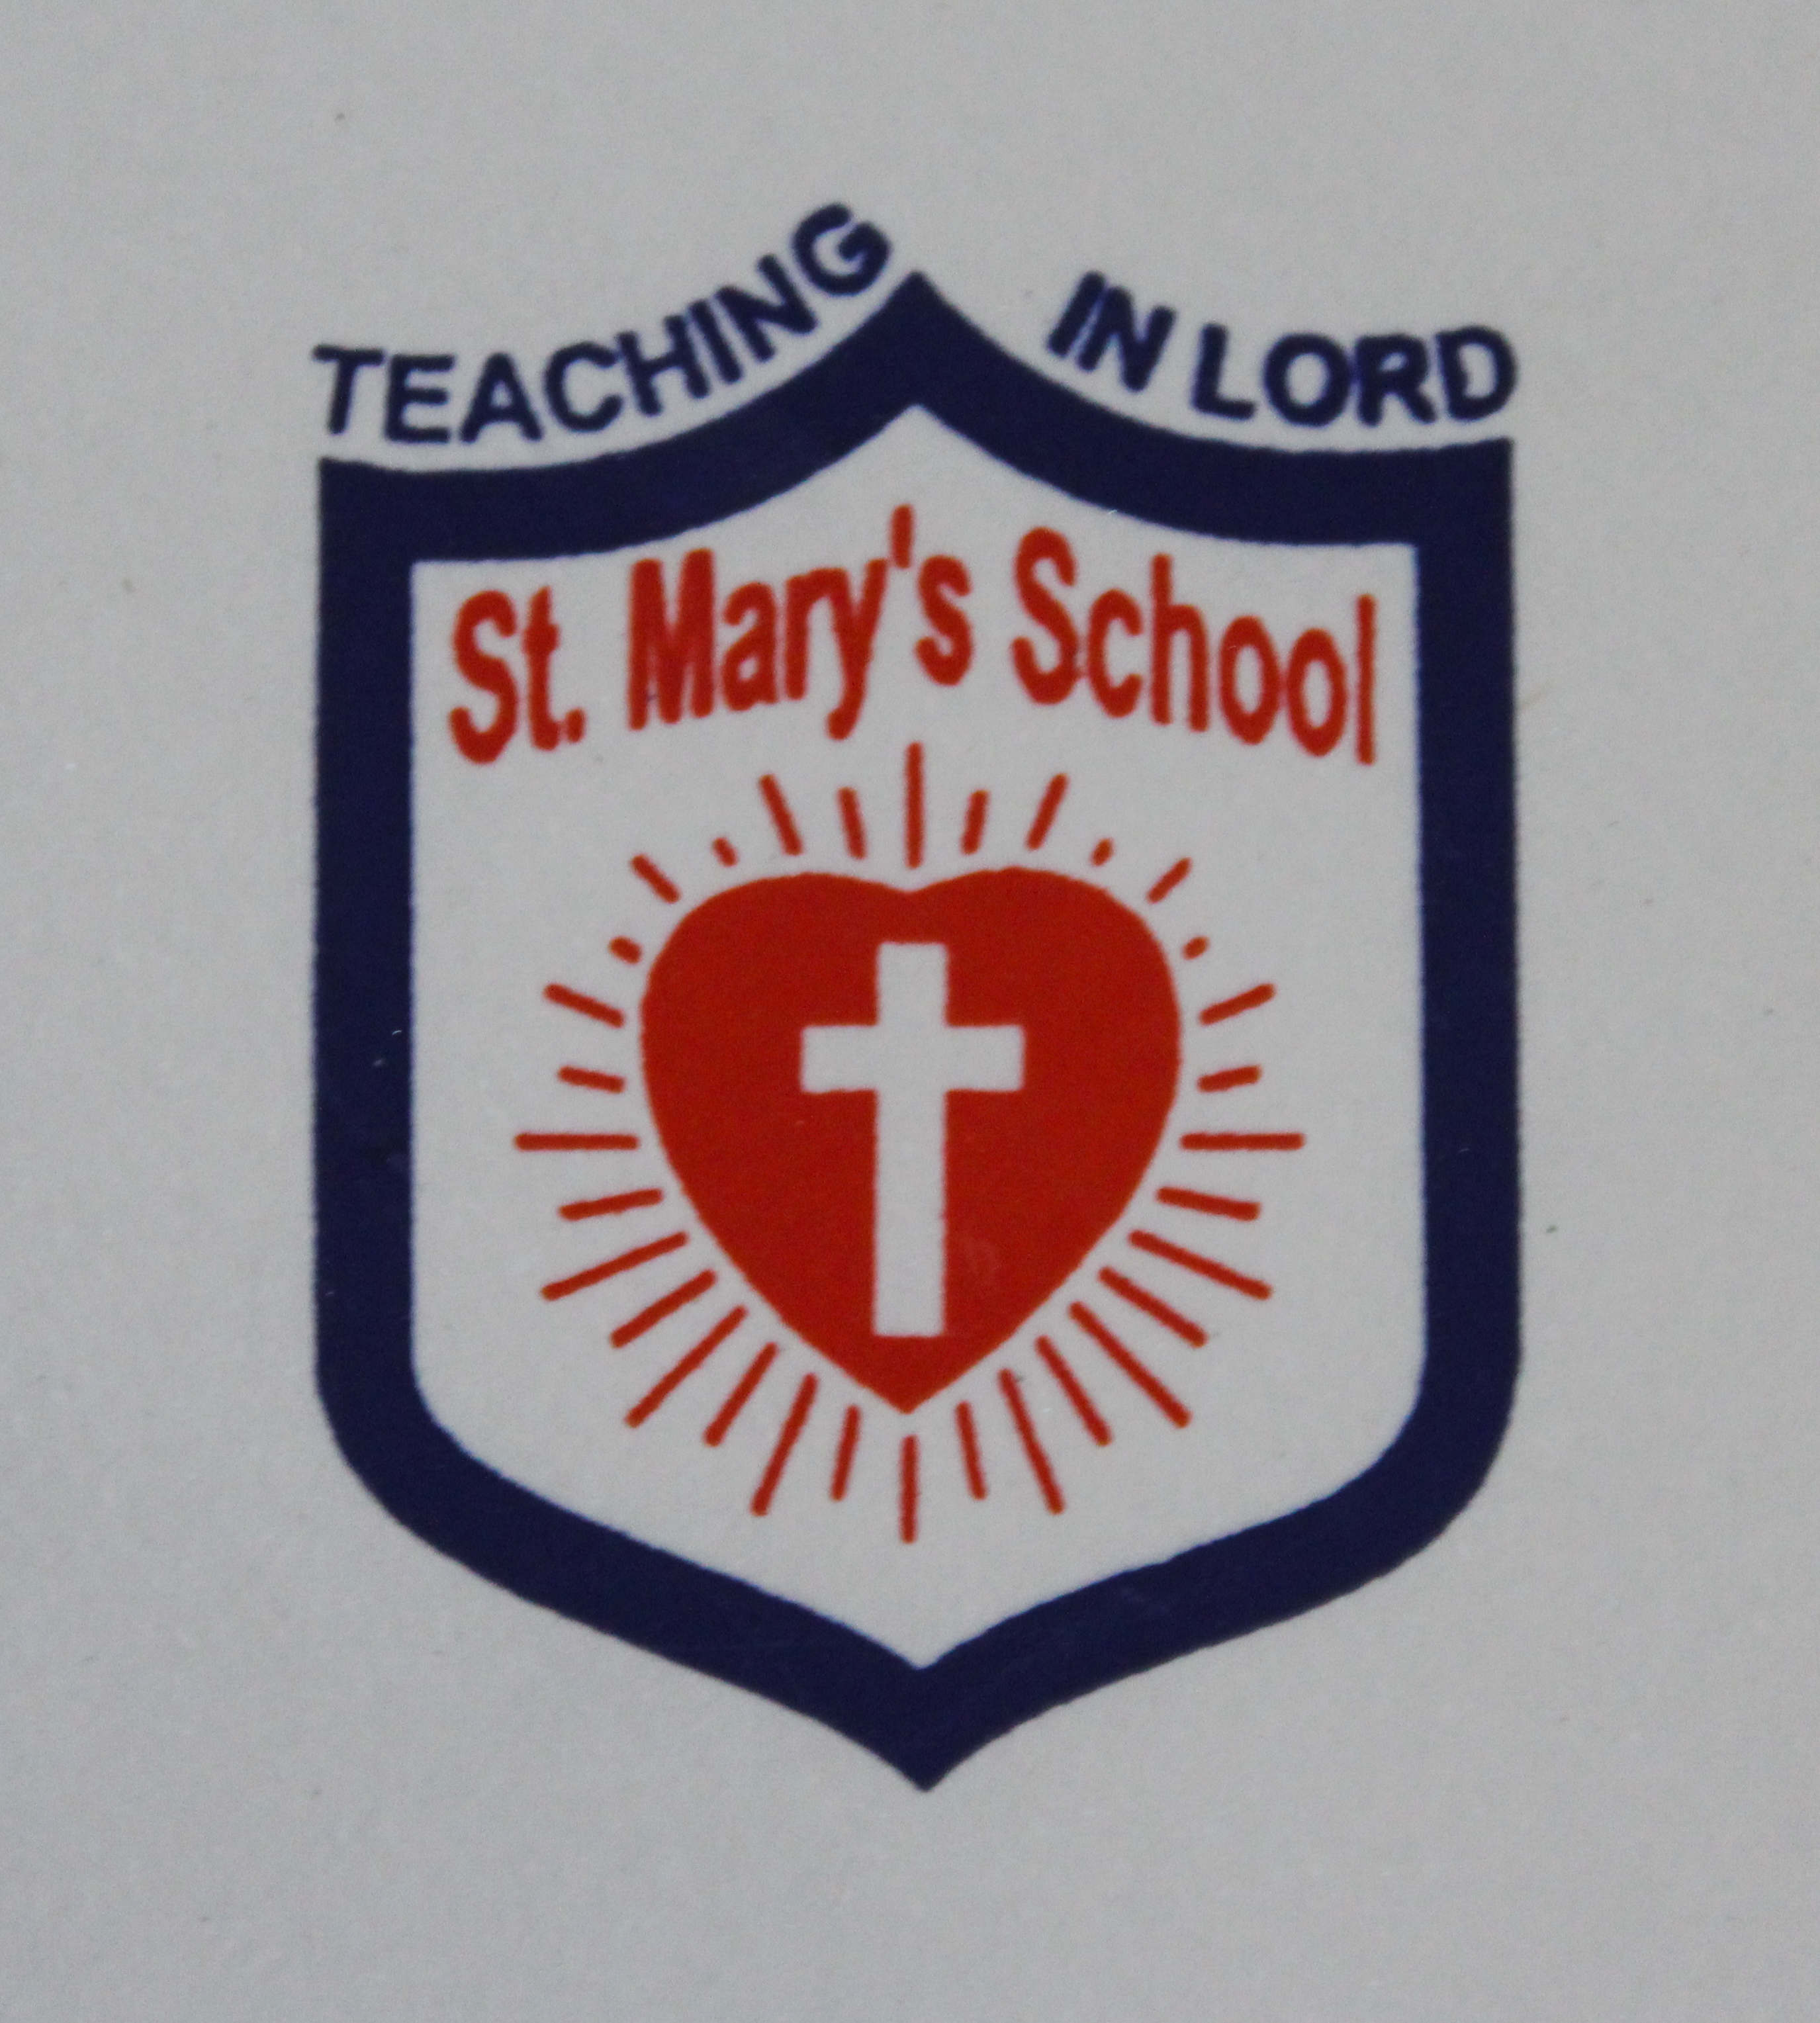 St. Mary's Senior Secondary School